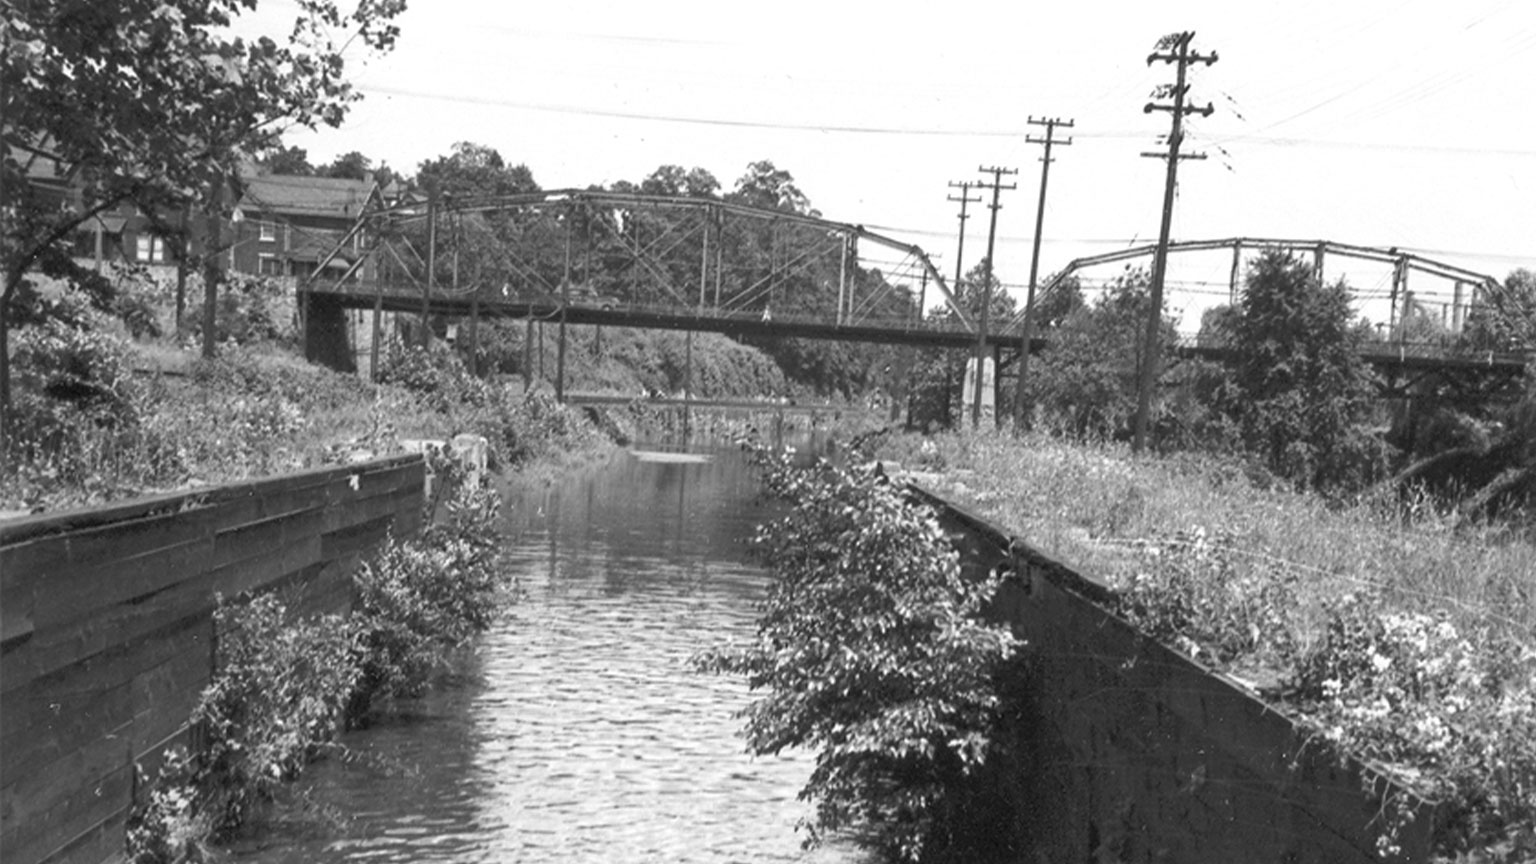 This picture does a nice job of showing what the walls of the locks looked like.  However, this picture was taken after the canal was no longer used which is why plants are starting to take back over.